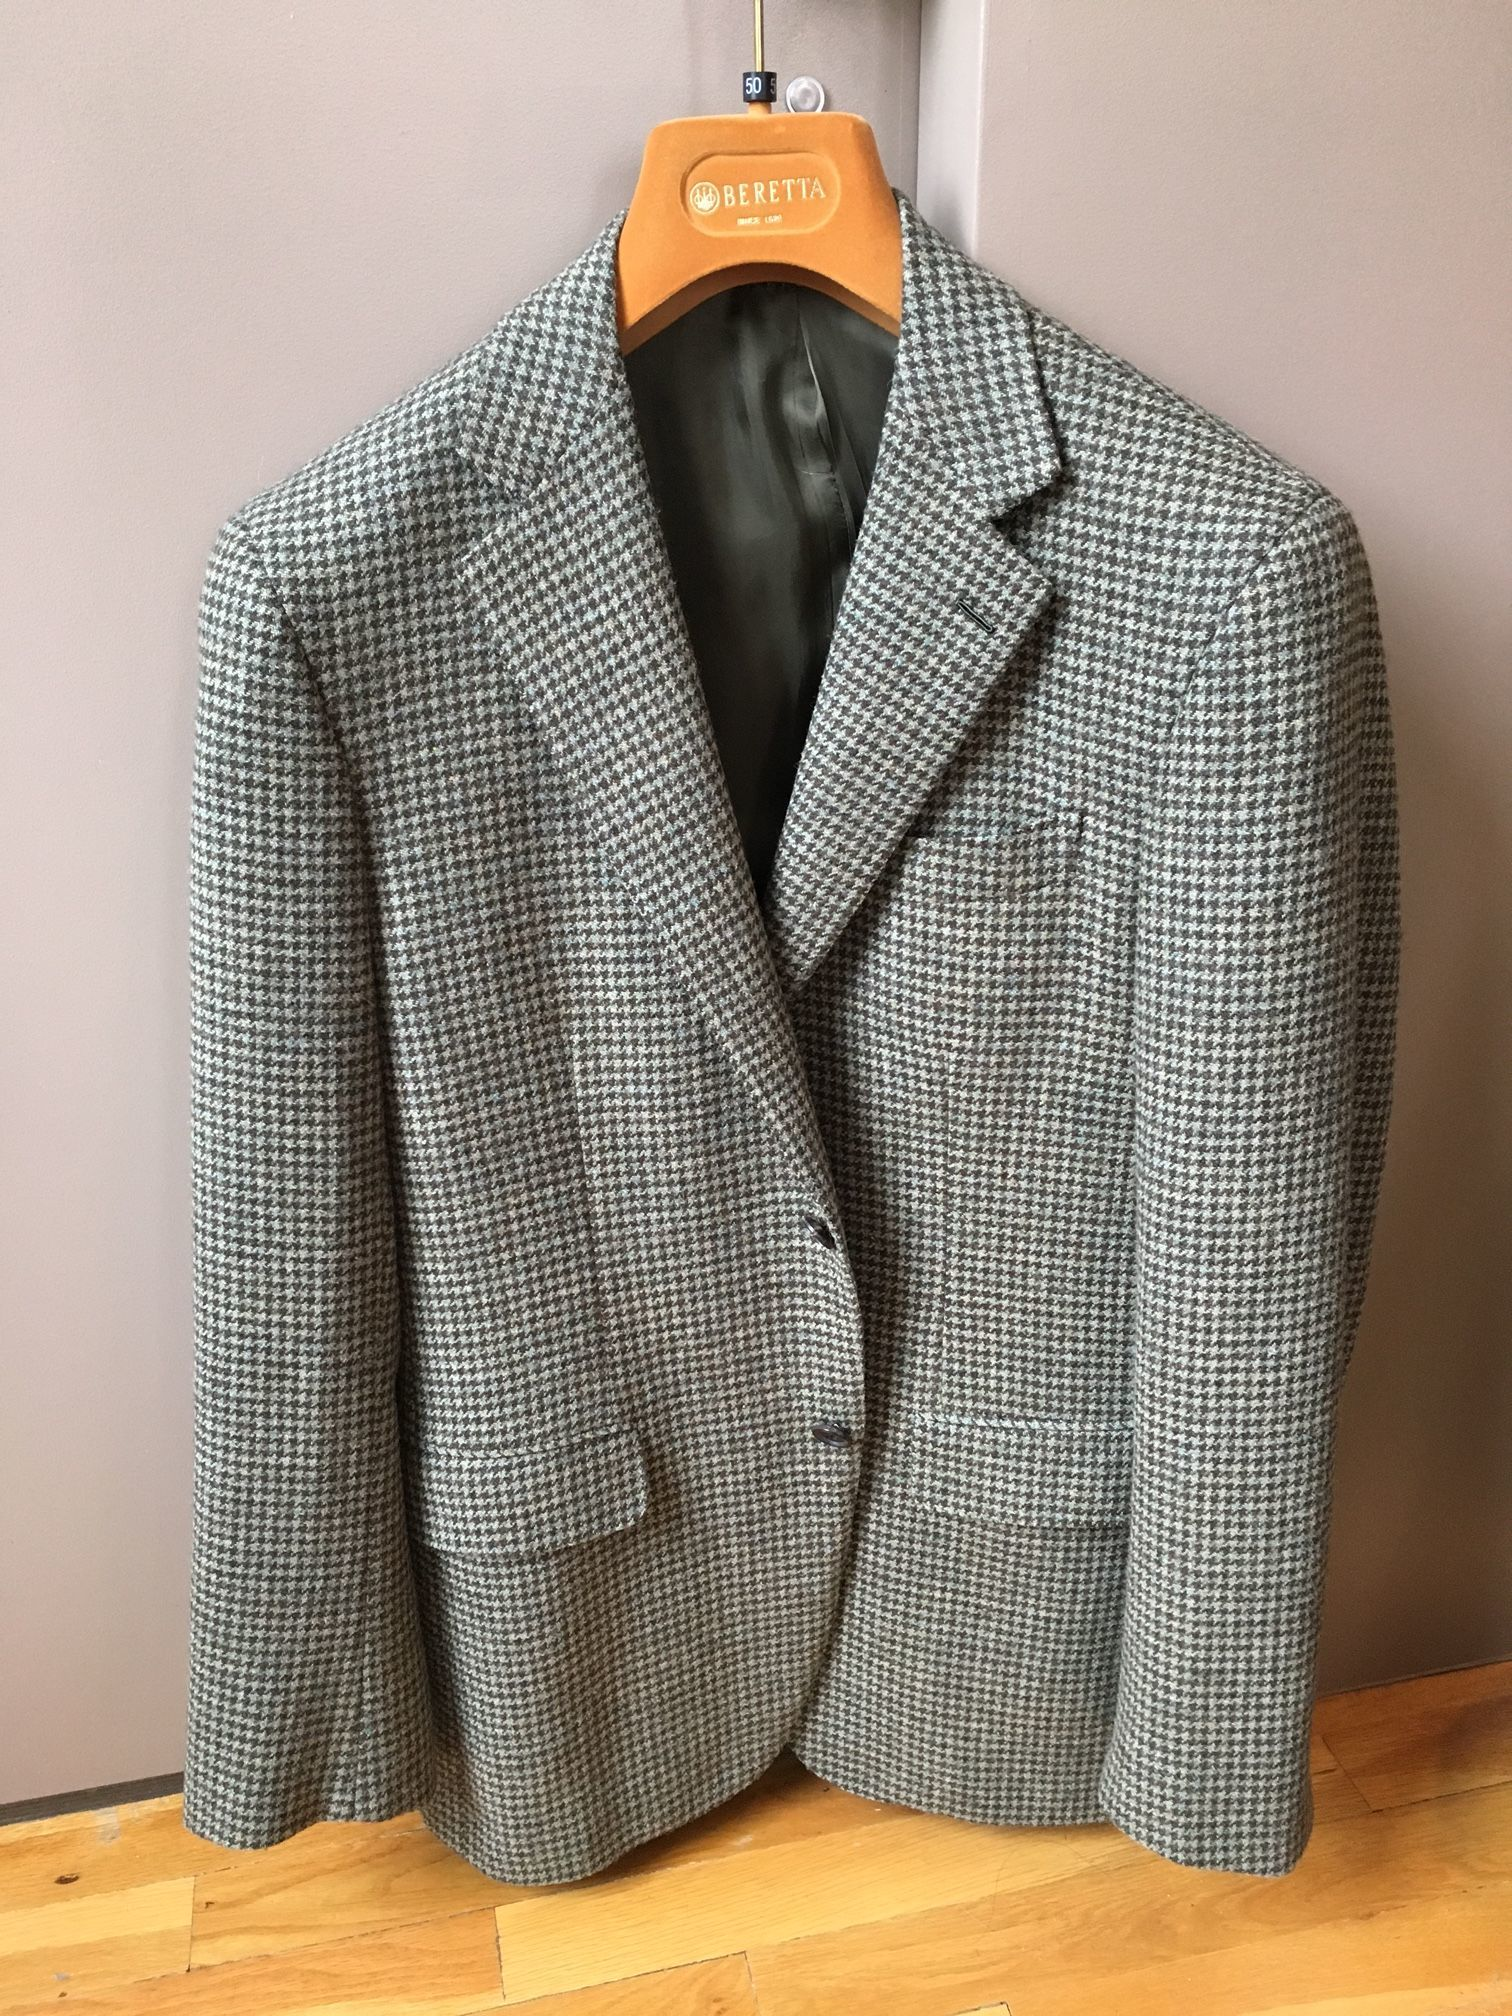 Milanese Buttonhole : milanese, buttonhole, Caruso, Sport, (48eu)-, Green, Houndstooth, Tweed., Milanese, Buttonhole, Styleforum